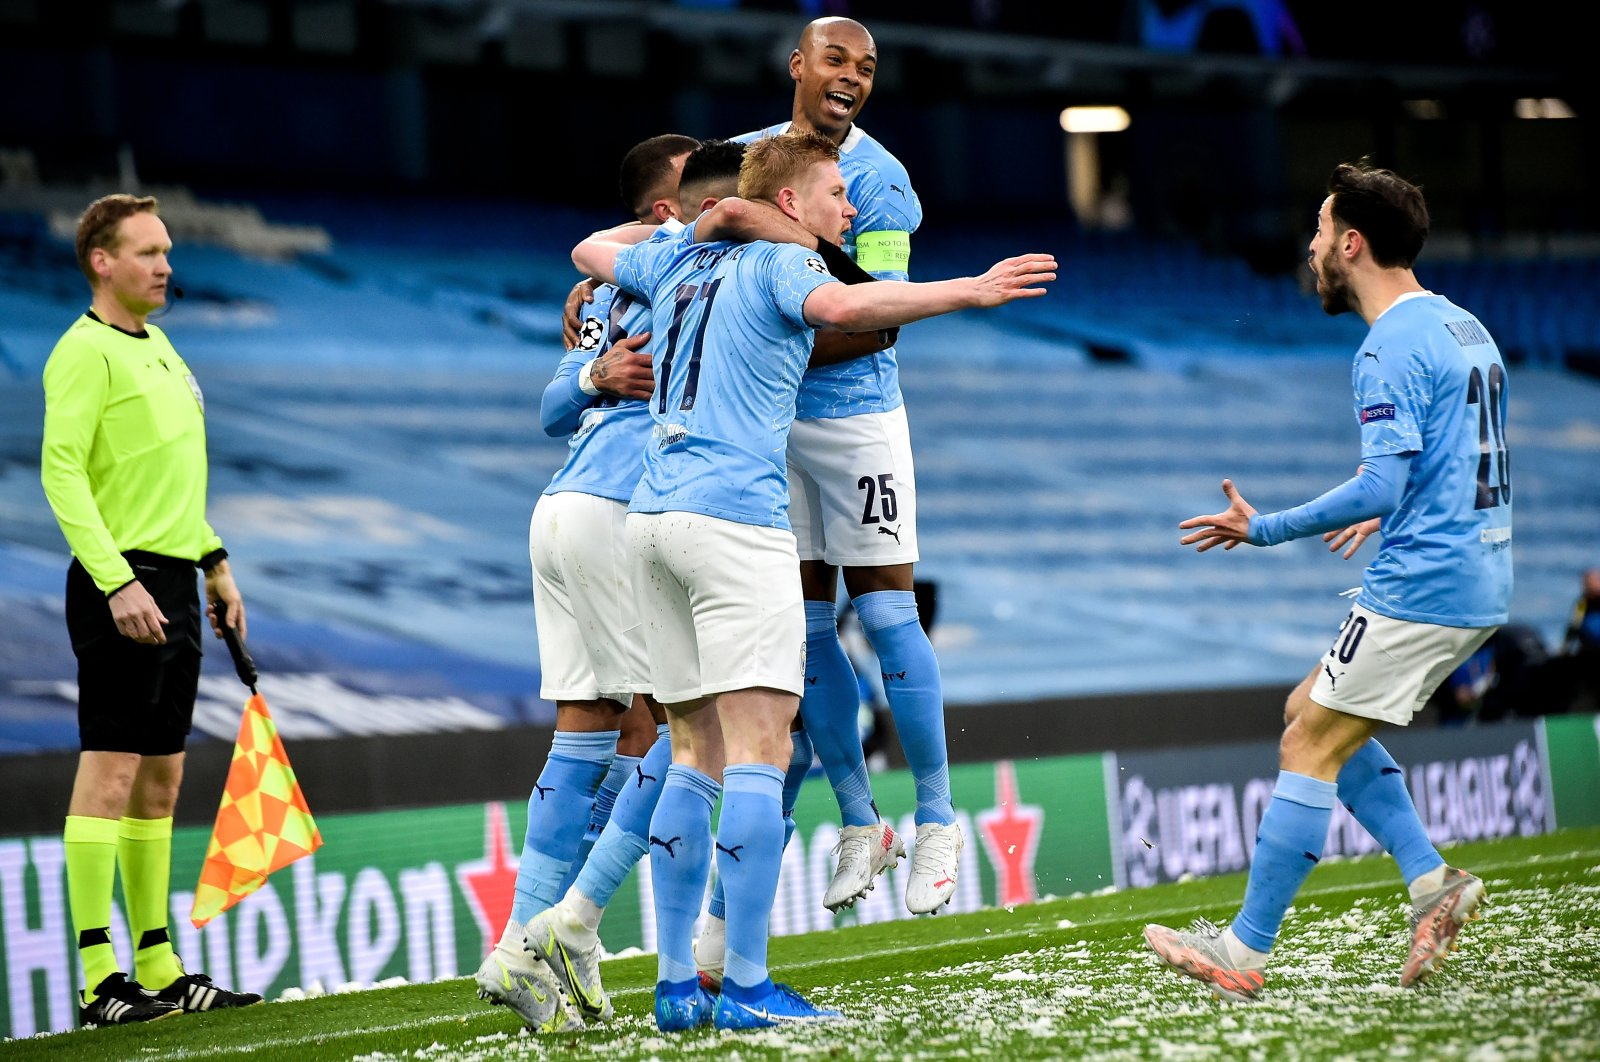 Manchester City's Fernandinho (C) and his teammates celebrate their team's 1-0 lead during the UEFA Champions League semi final, second leg soccer match between Manchester City and Paris Saint-Germain in Manchester, Britain, 04 May 2021. (EPA Photo)